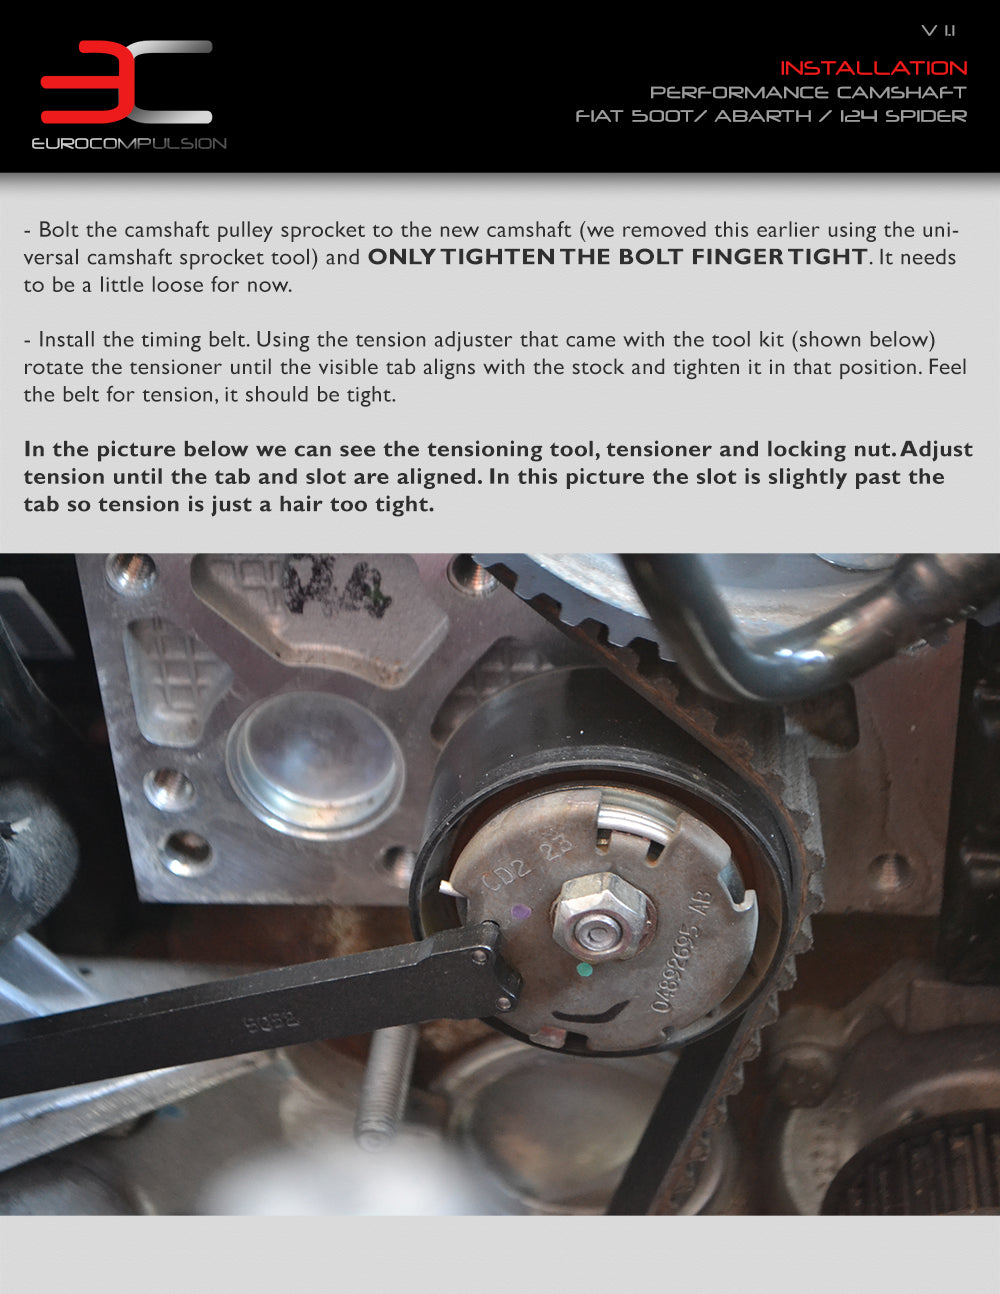 Performance Camshaft Install Fpt 14l Multiair Turbo Engine Fiat Timing Belt Please Read The Instructions Before Proceeding Tool Kits Come With Additional On Where To Locate These Items And How